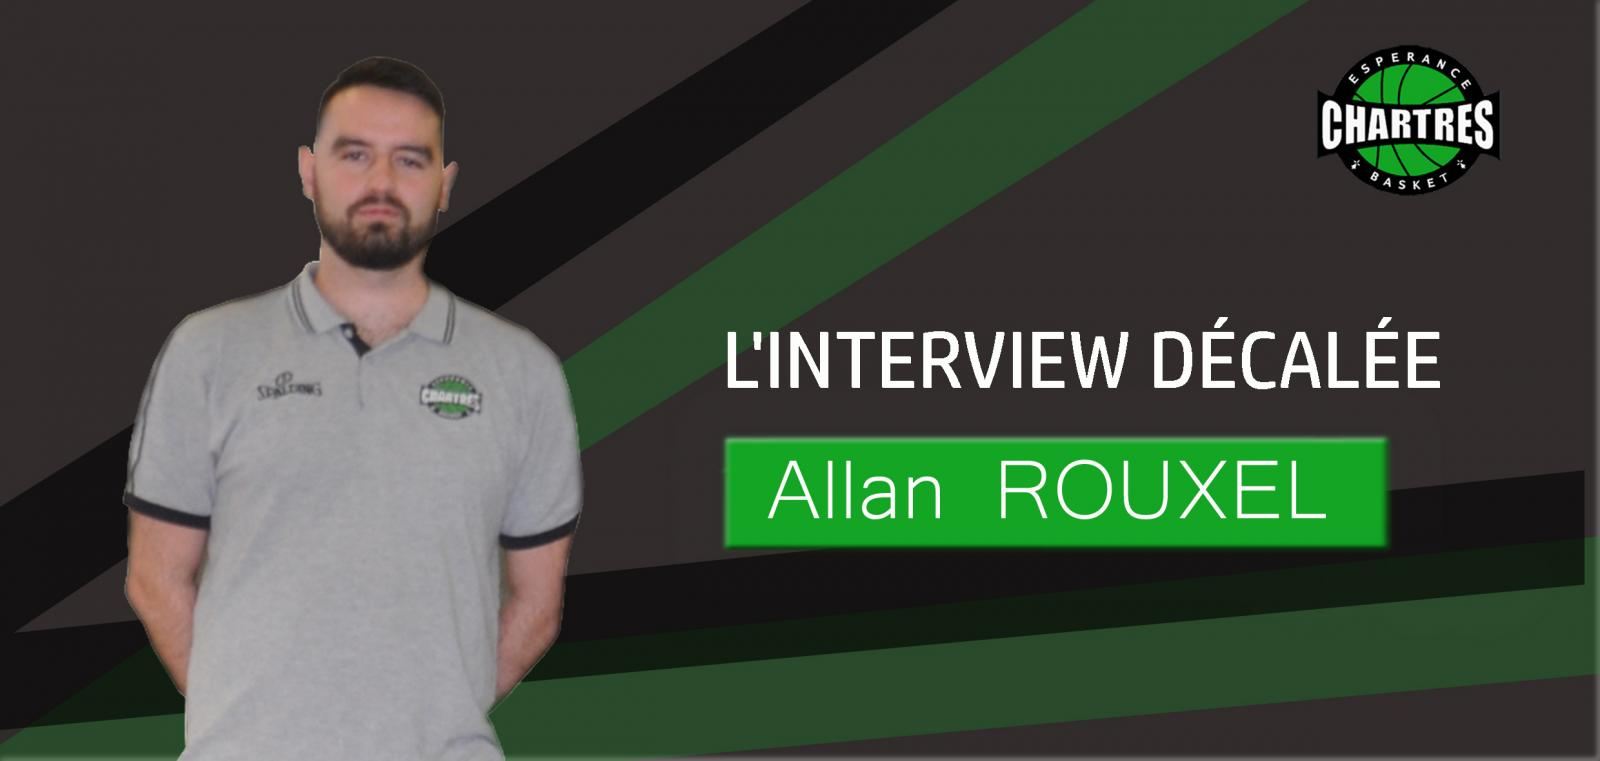 Interview décalée Allan ROUXEL